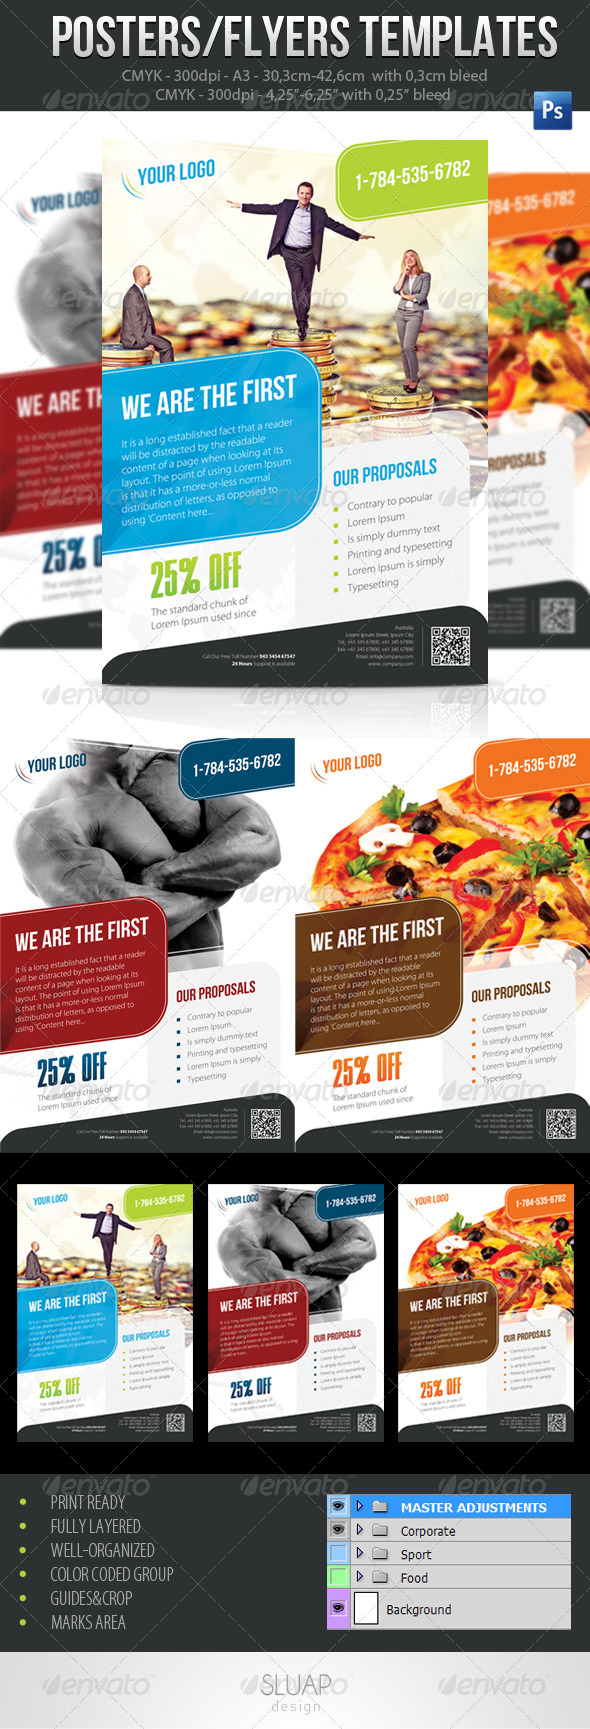 Poster Template A3 - Corporate Flyers